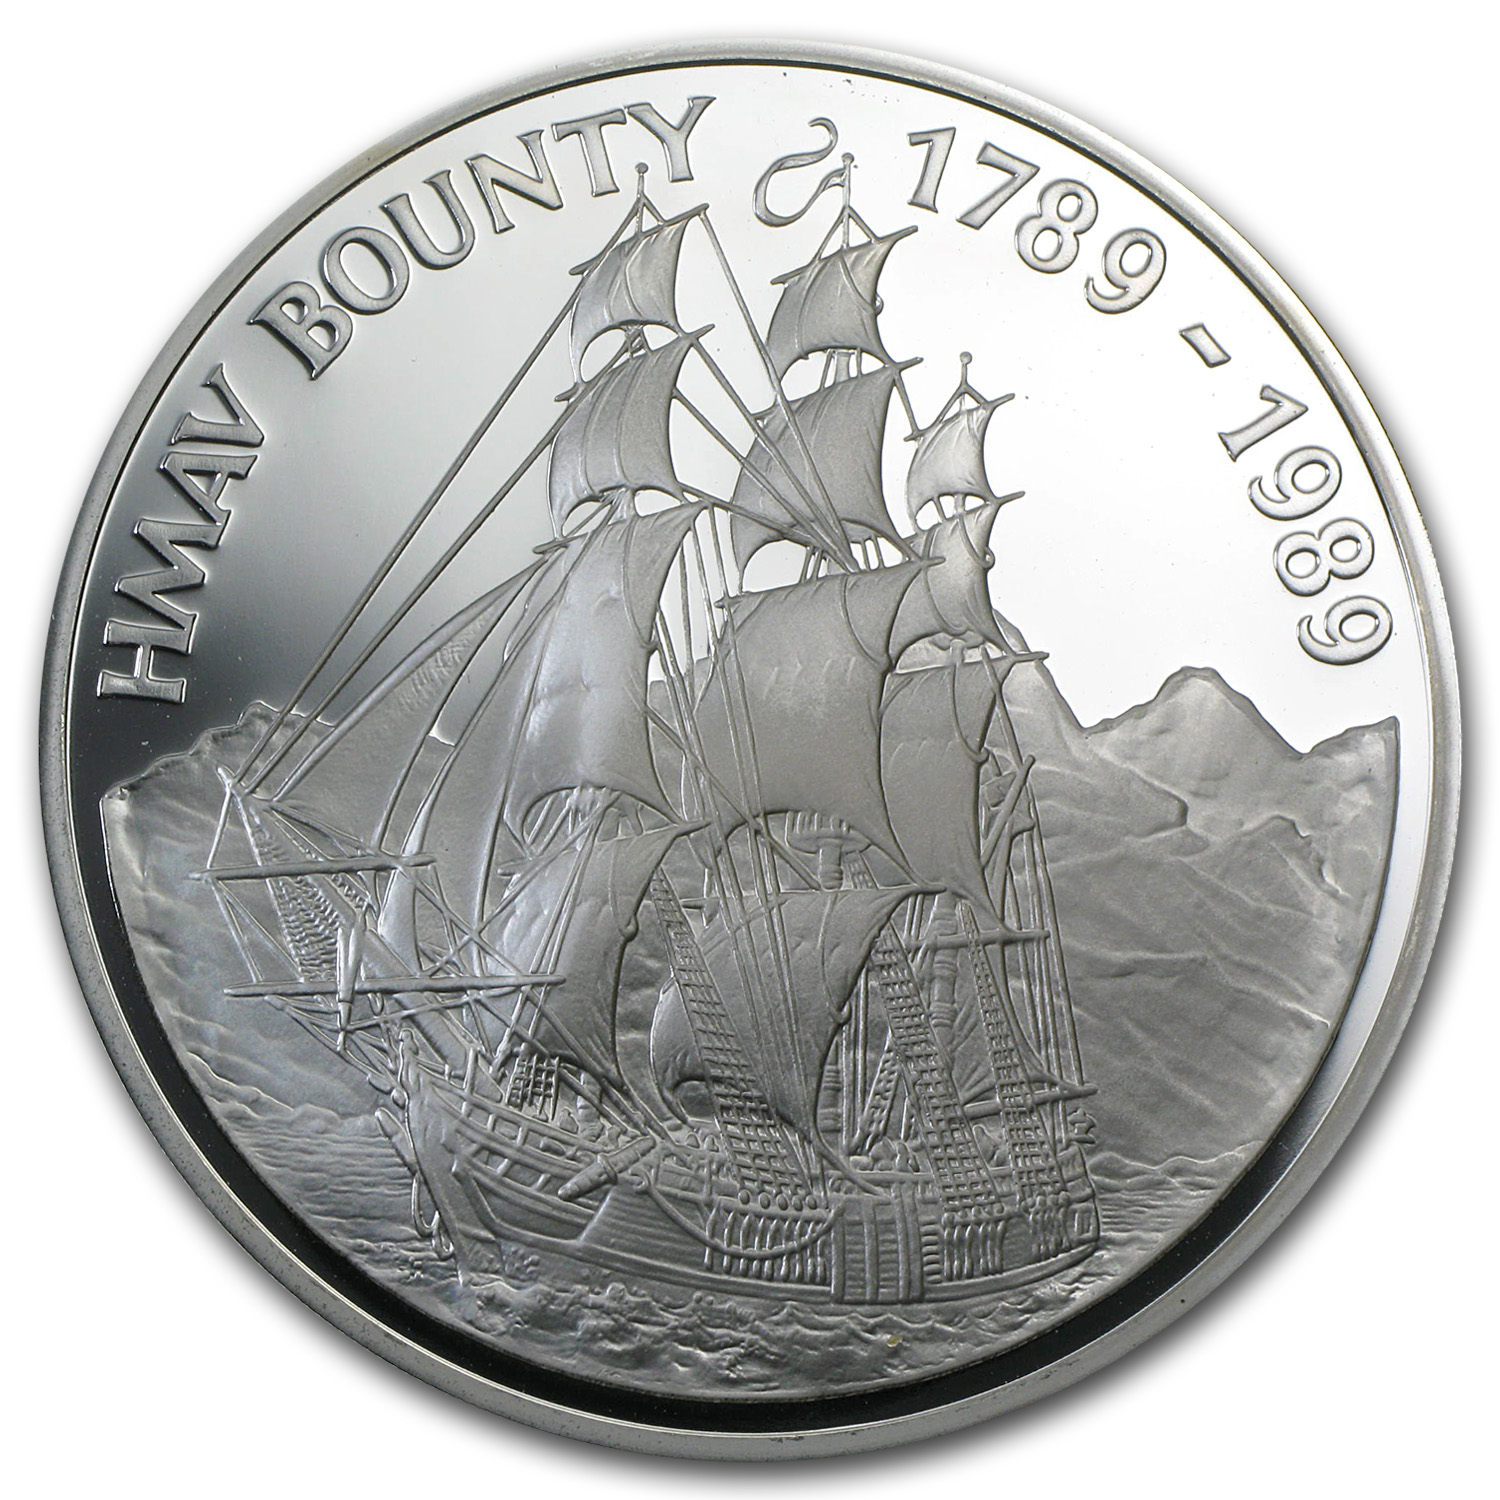 1988-1989 Pitcairn Islands Silver $50 Proof (ASW 5.0)